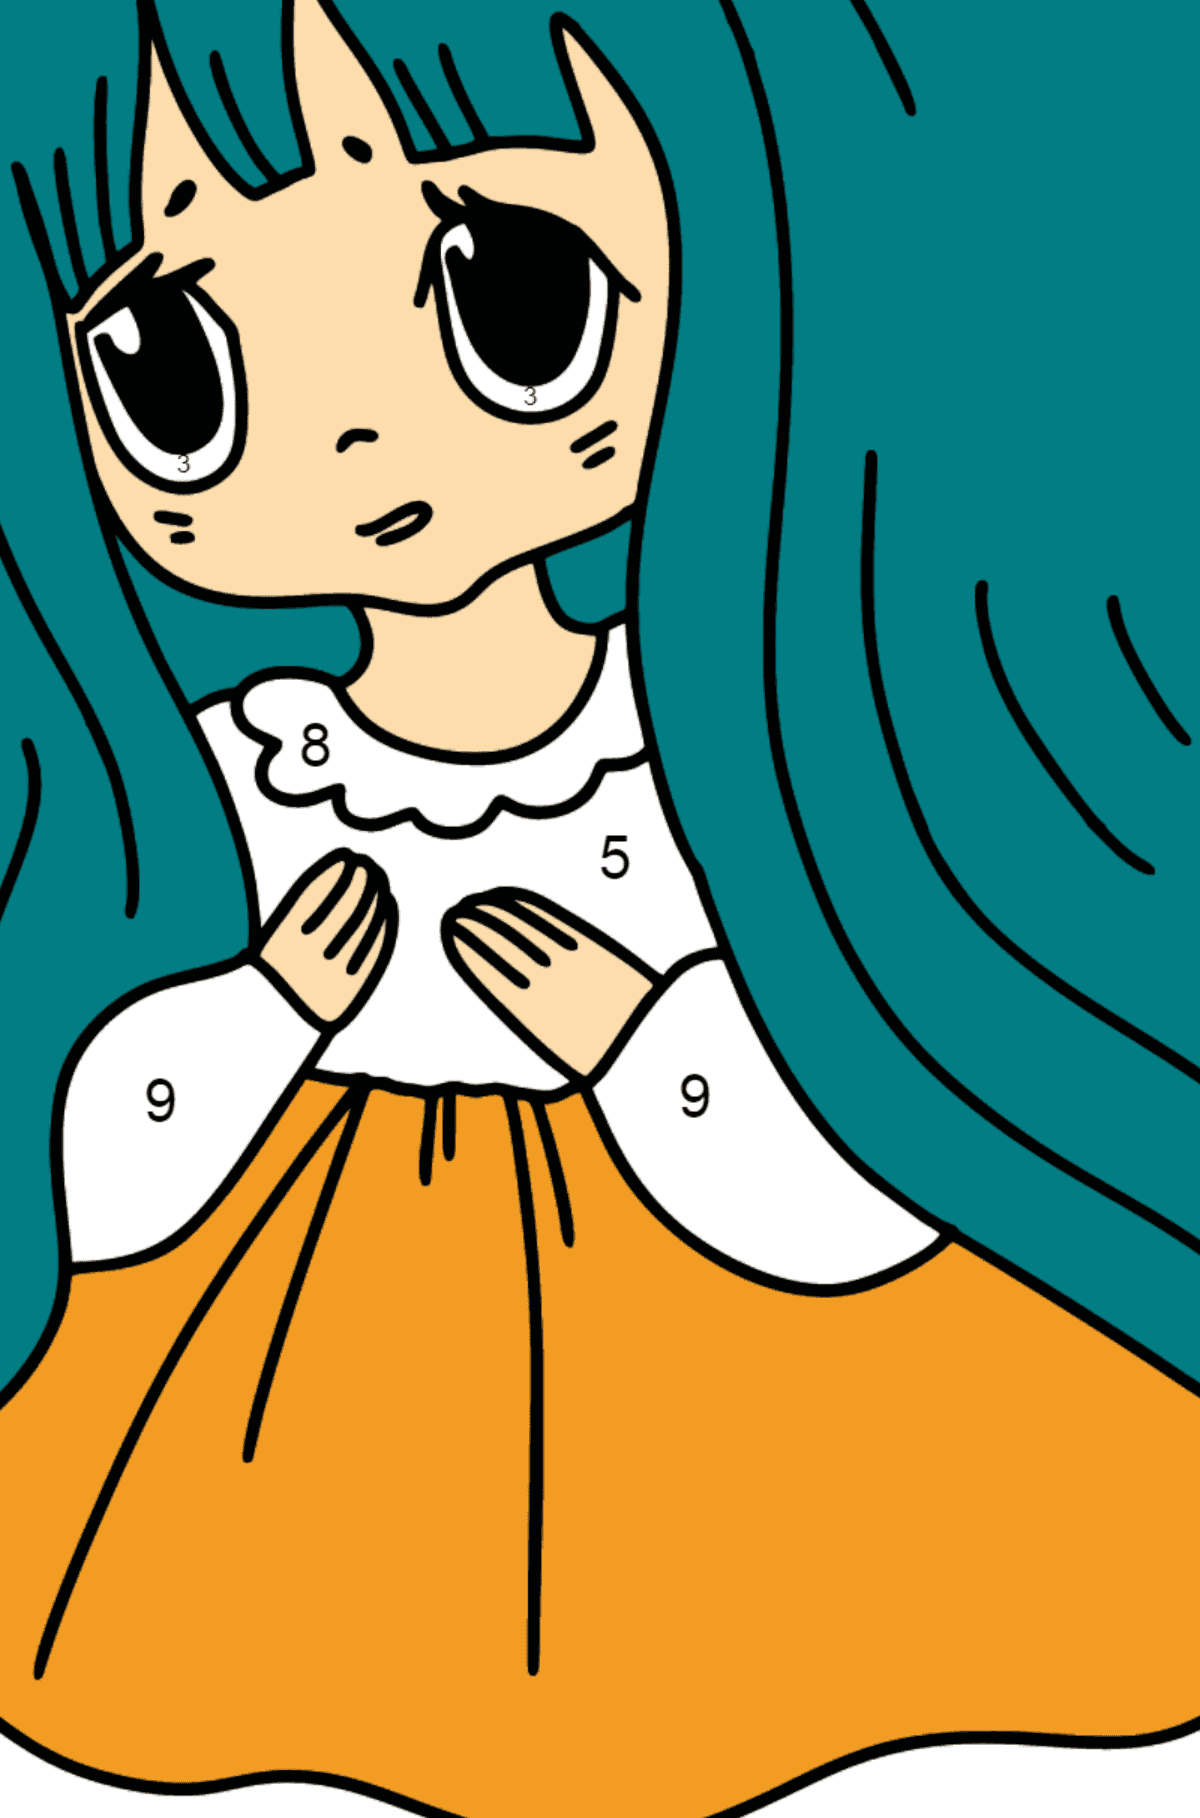 Anime Sad Girl Coloring Pages - Coloring by Numbers for Kids